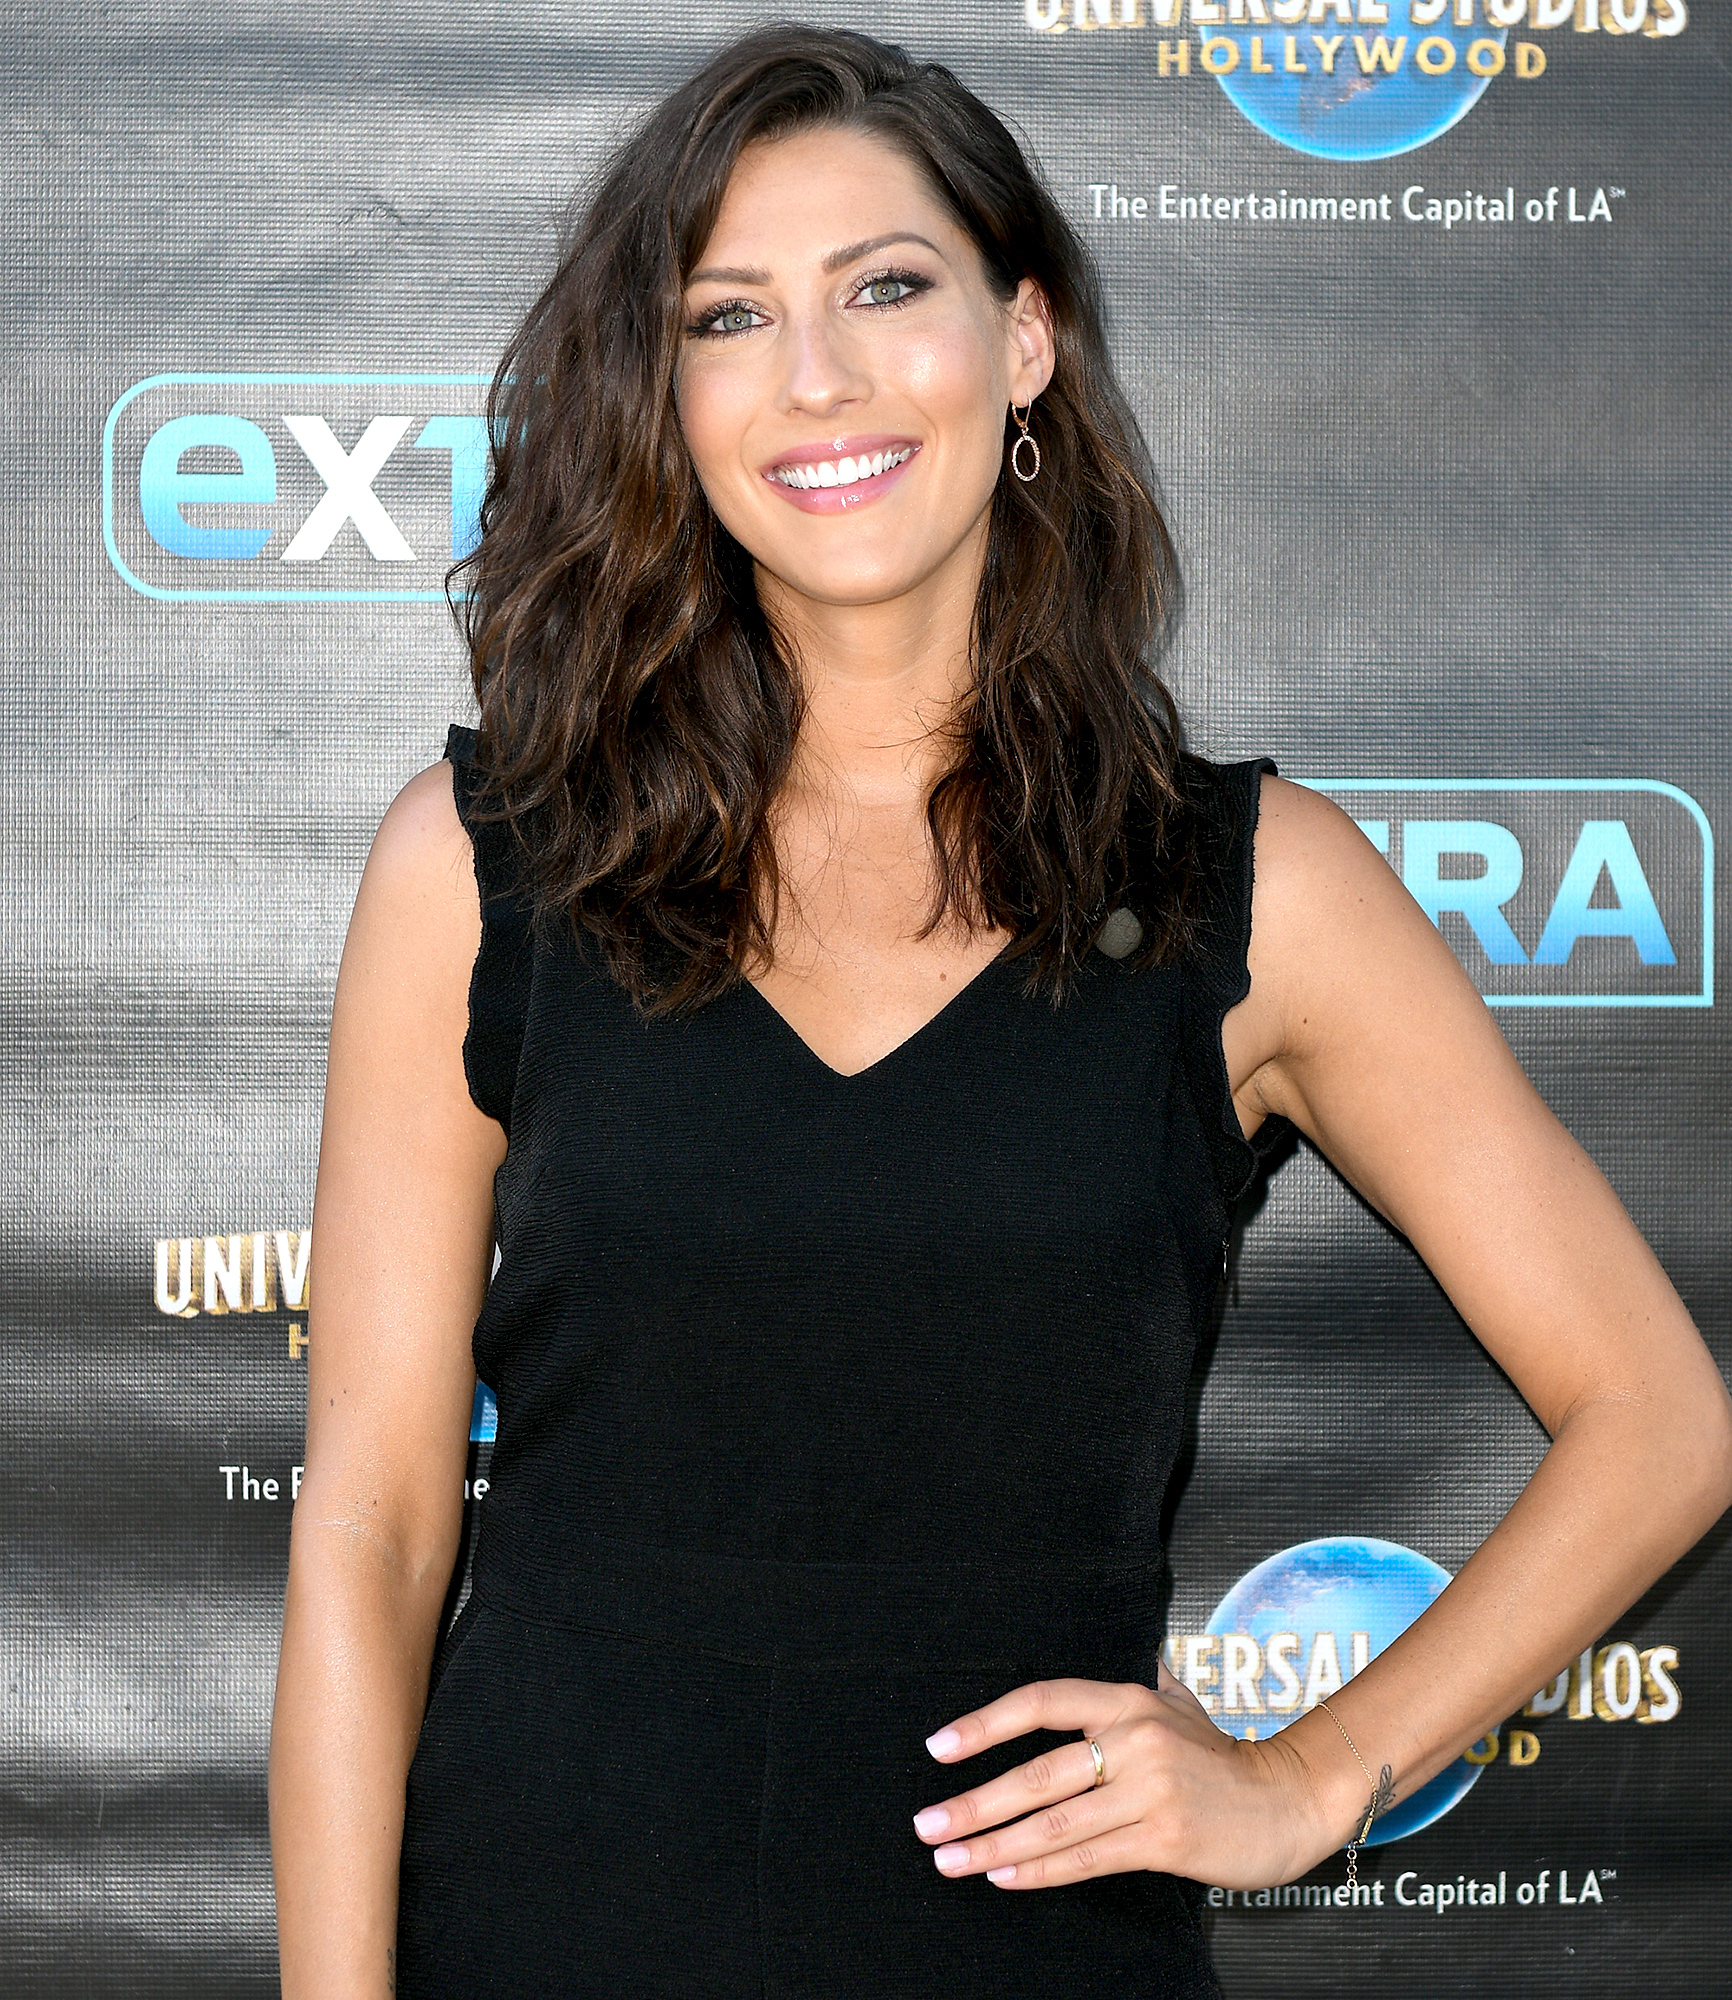 """Becca-Kufrin-Favorite-Moments-of-2018 - While getting engaged to Garrett Yrigoyen on The Bachelorette was almost the best moment of 2018 for the 28-year-old, she says finally revealing the news was actually better. """"Being together and [able to say] say his name in public now,"""" was a great feeling, she says."""